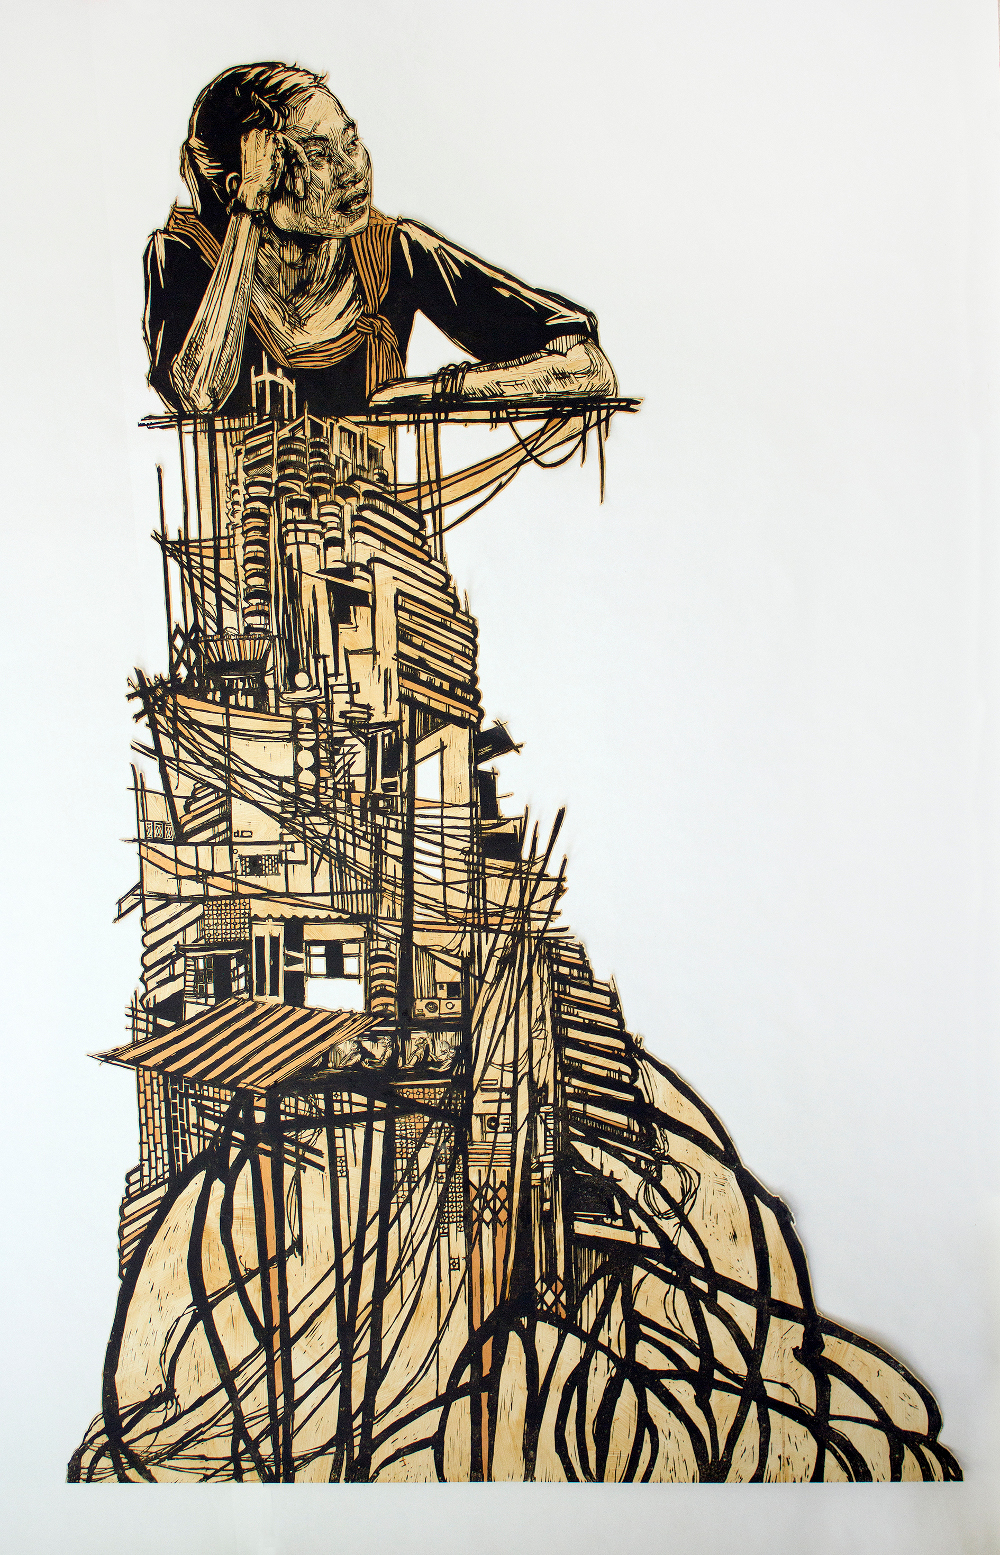 Swoon, Bangkok, 2008, block print on mylar, coffee stained, hand painted, 274.3 x 182.9 cm